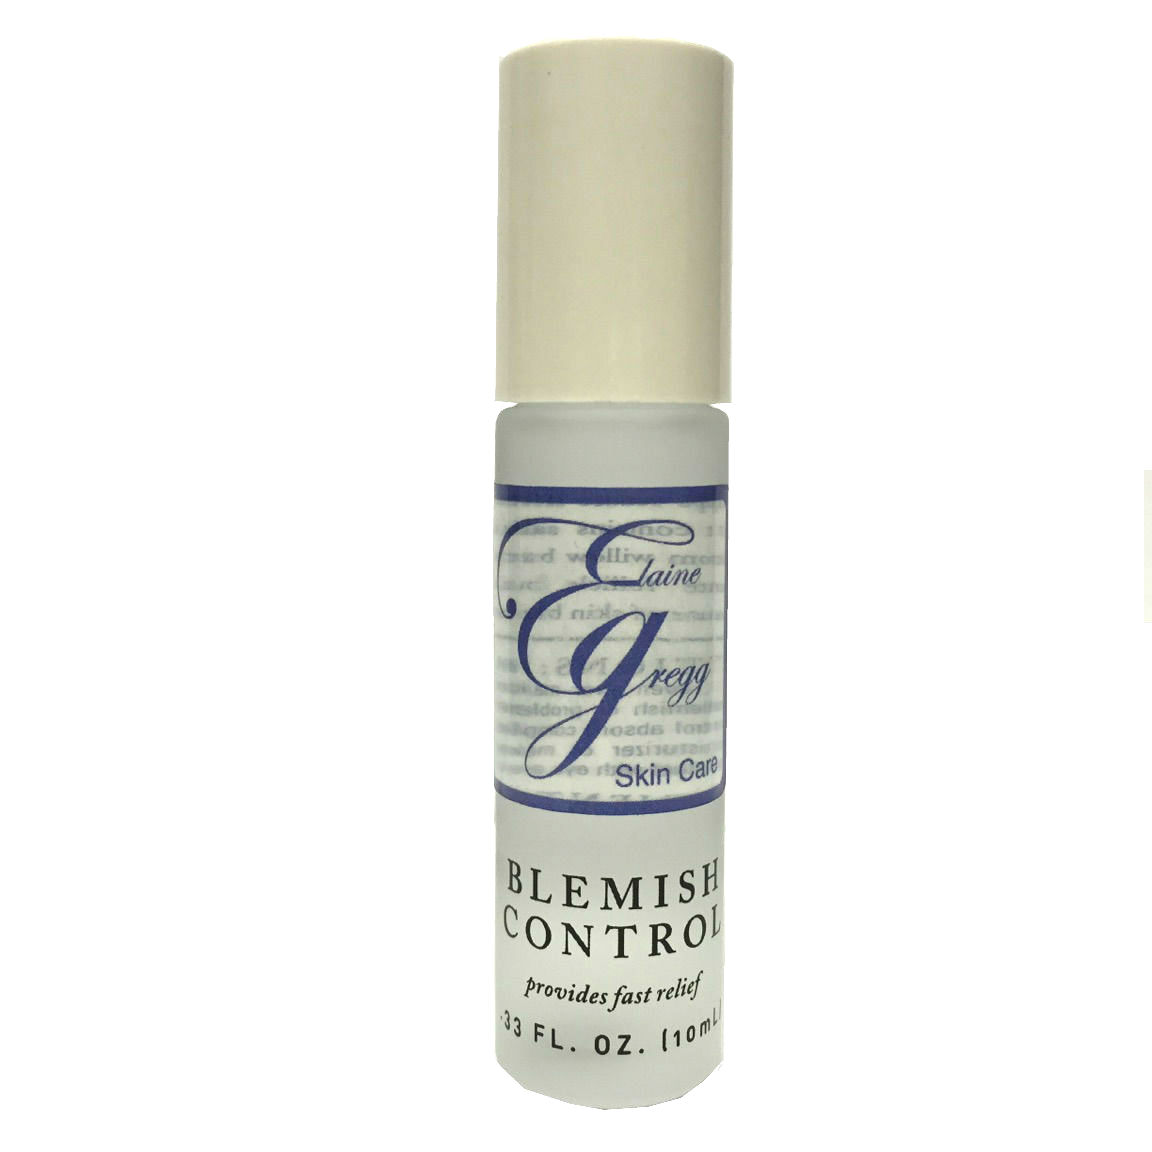 Elaine Gregg Blemish Control Spot Treatment